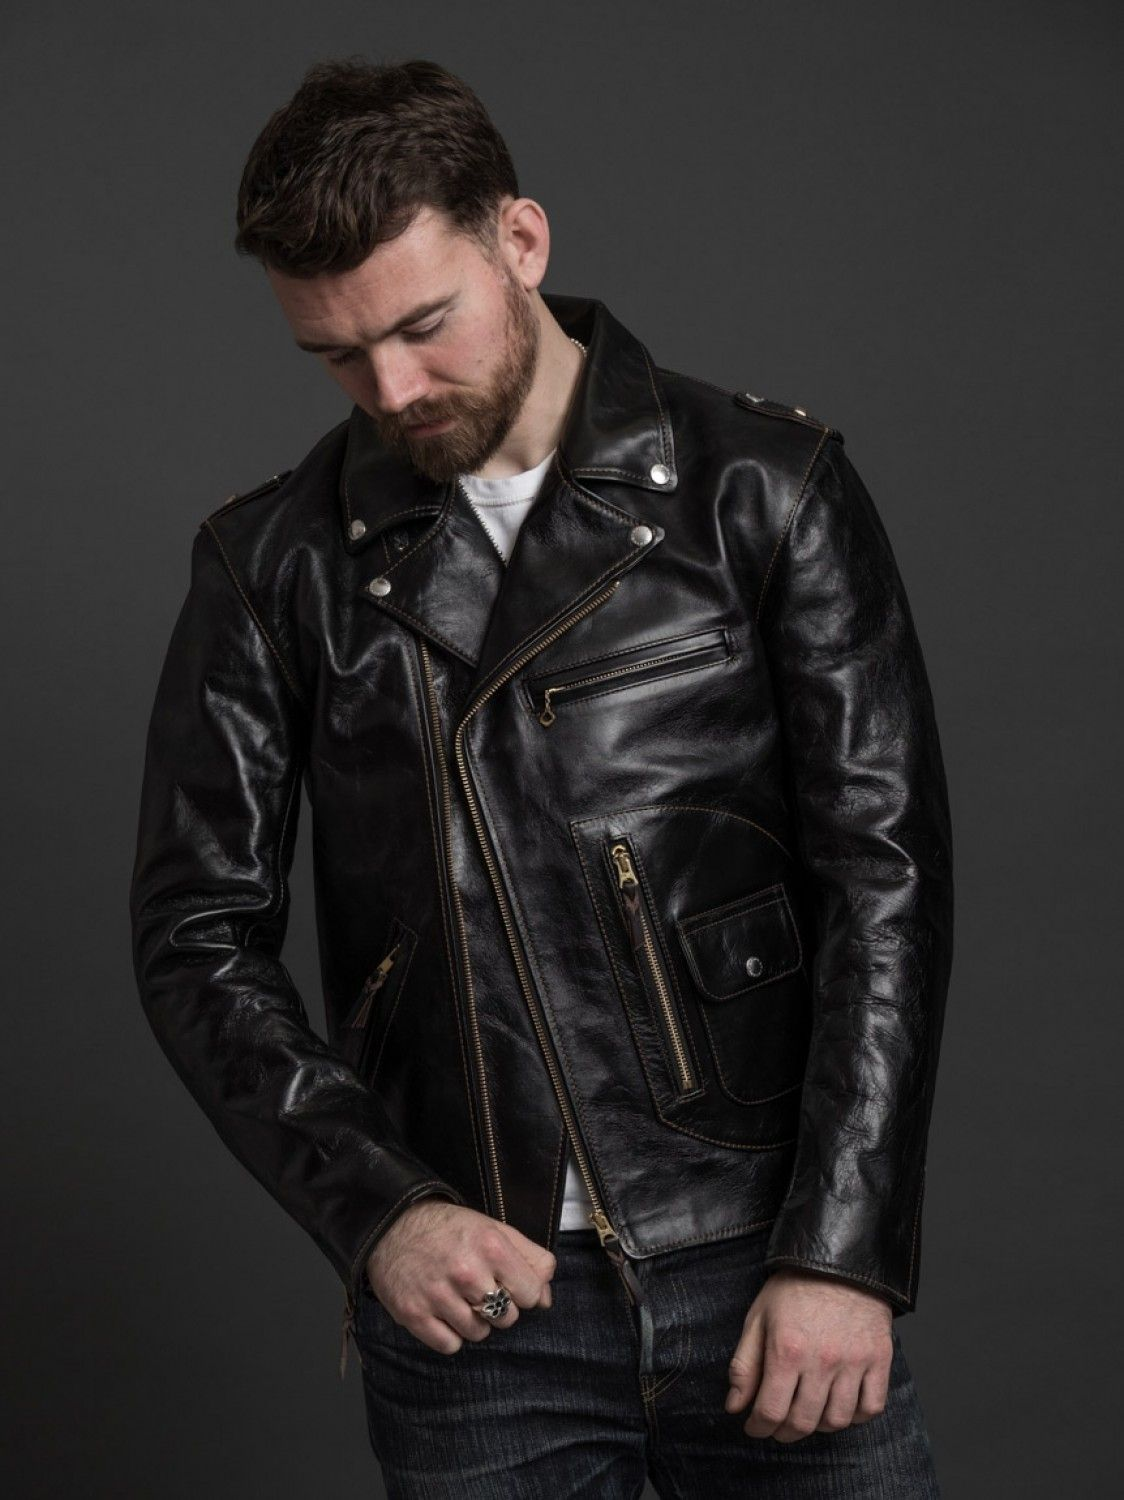 The Flat Head Horsehide Rider S Jacket Leather Jacket Leather Jacket Men Celebrities Leather Jacket [ 1500 x 1124 Pixel ]